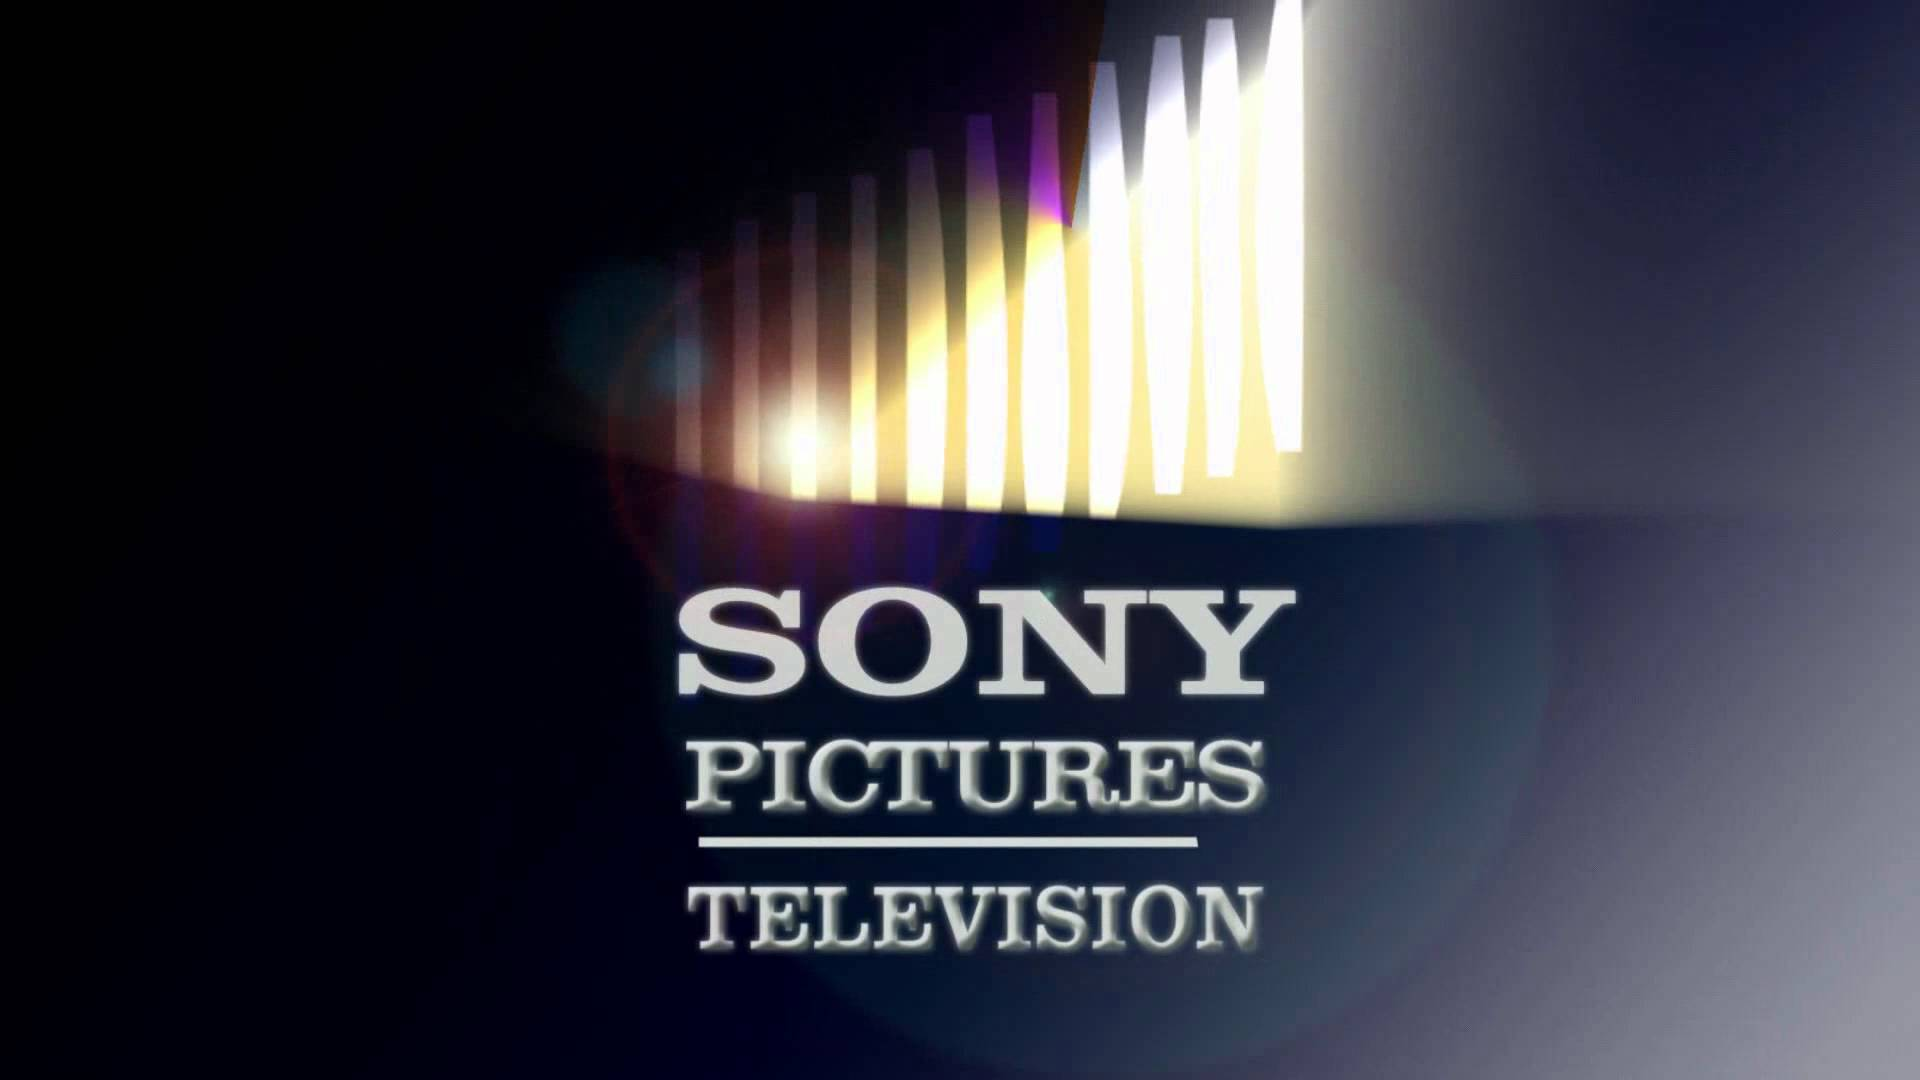 sony pictures television mediaset